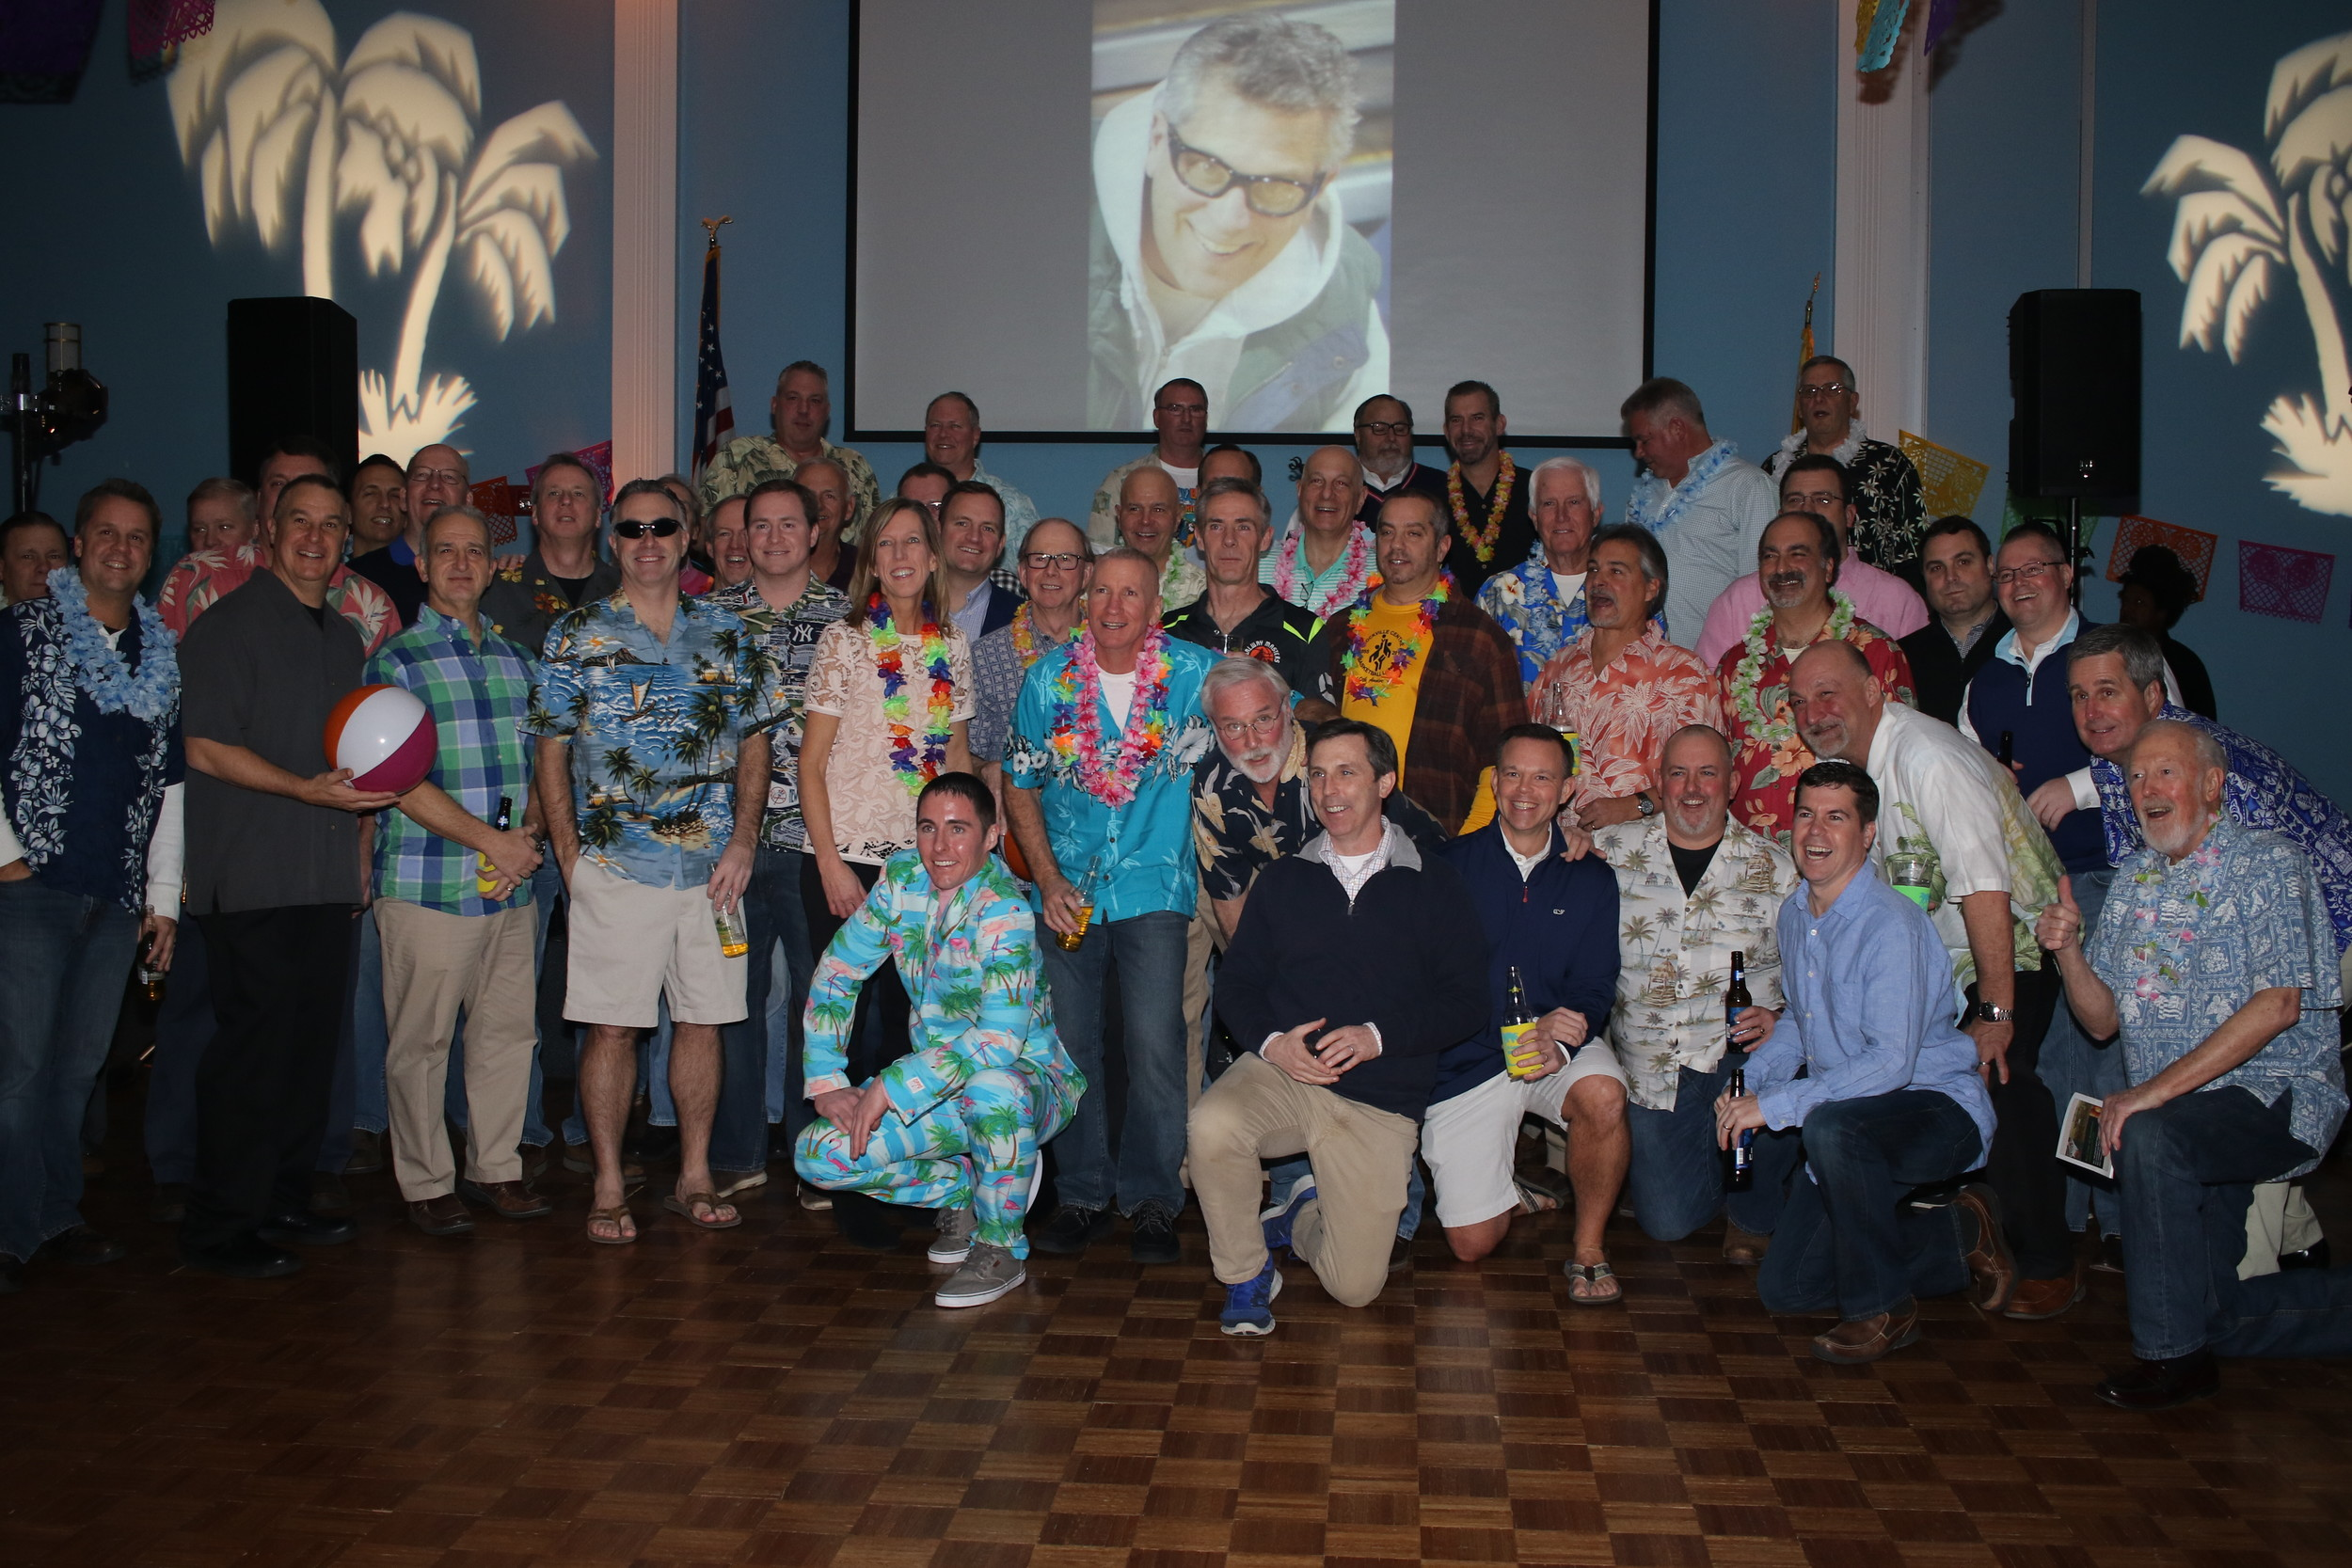 Dozens of partygoers gathered at the St. Agnes Parish Center for the fourth annual Margaritaville.